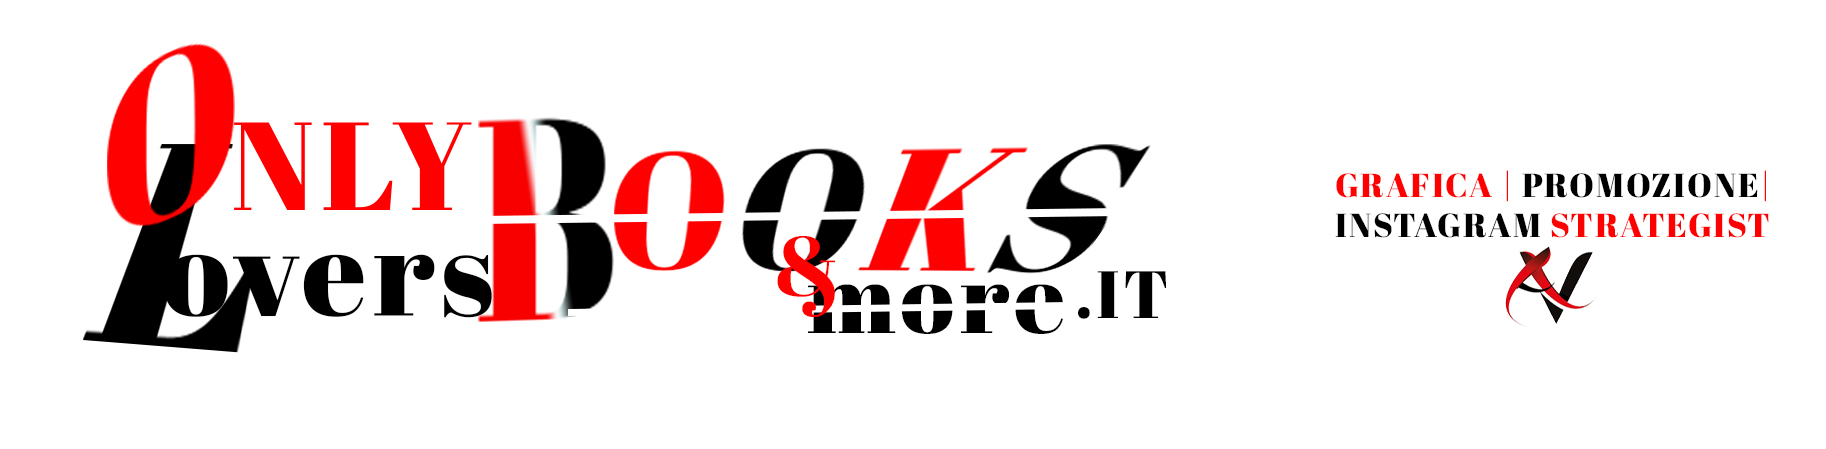 ONLYBOOKSLOVER.IT